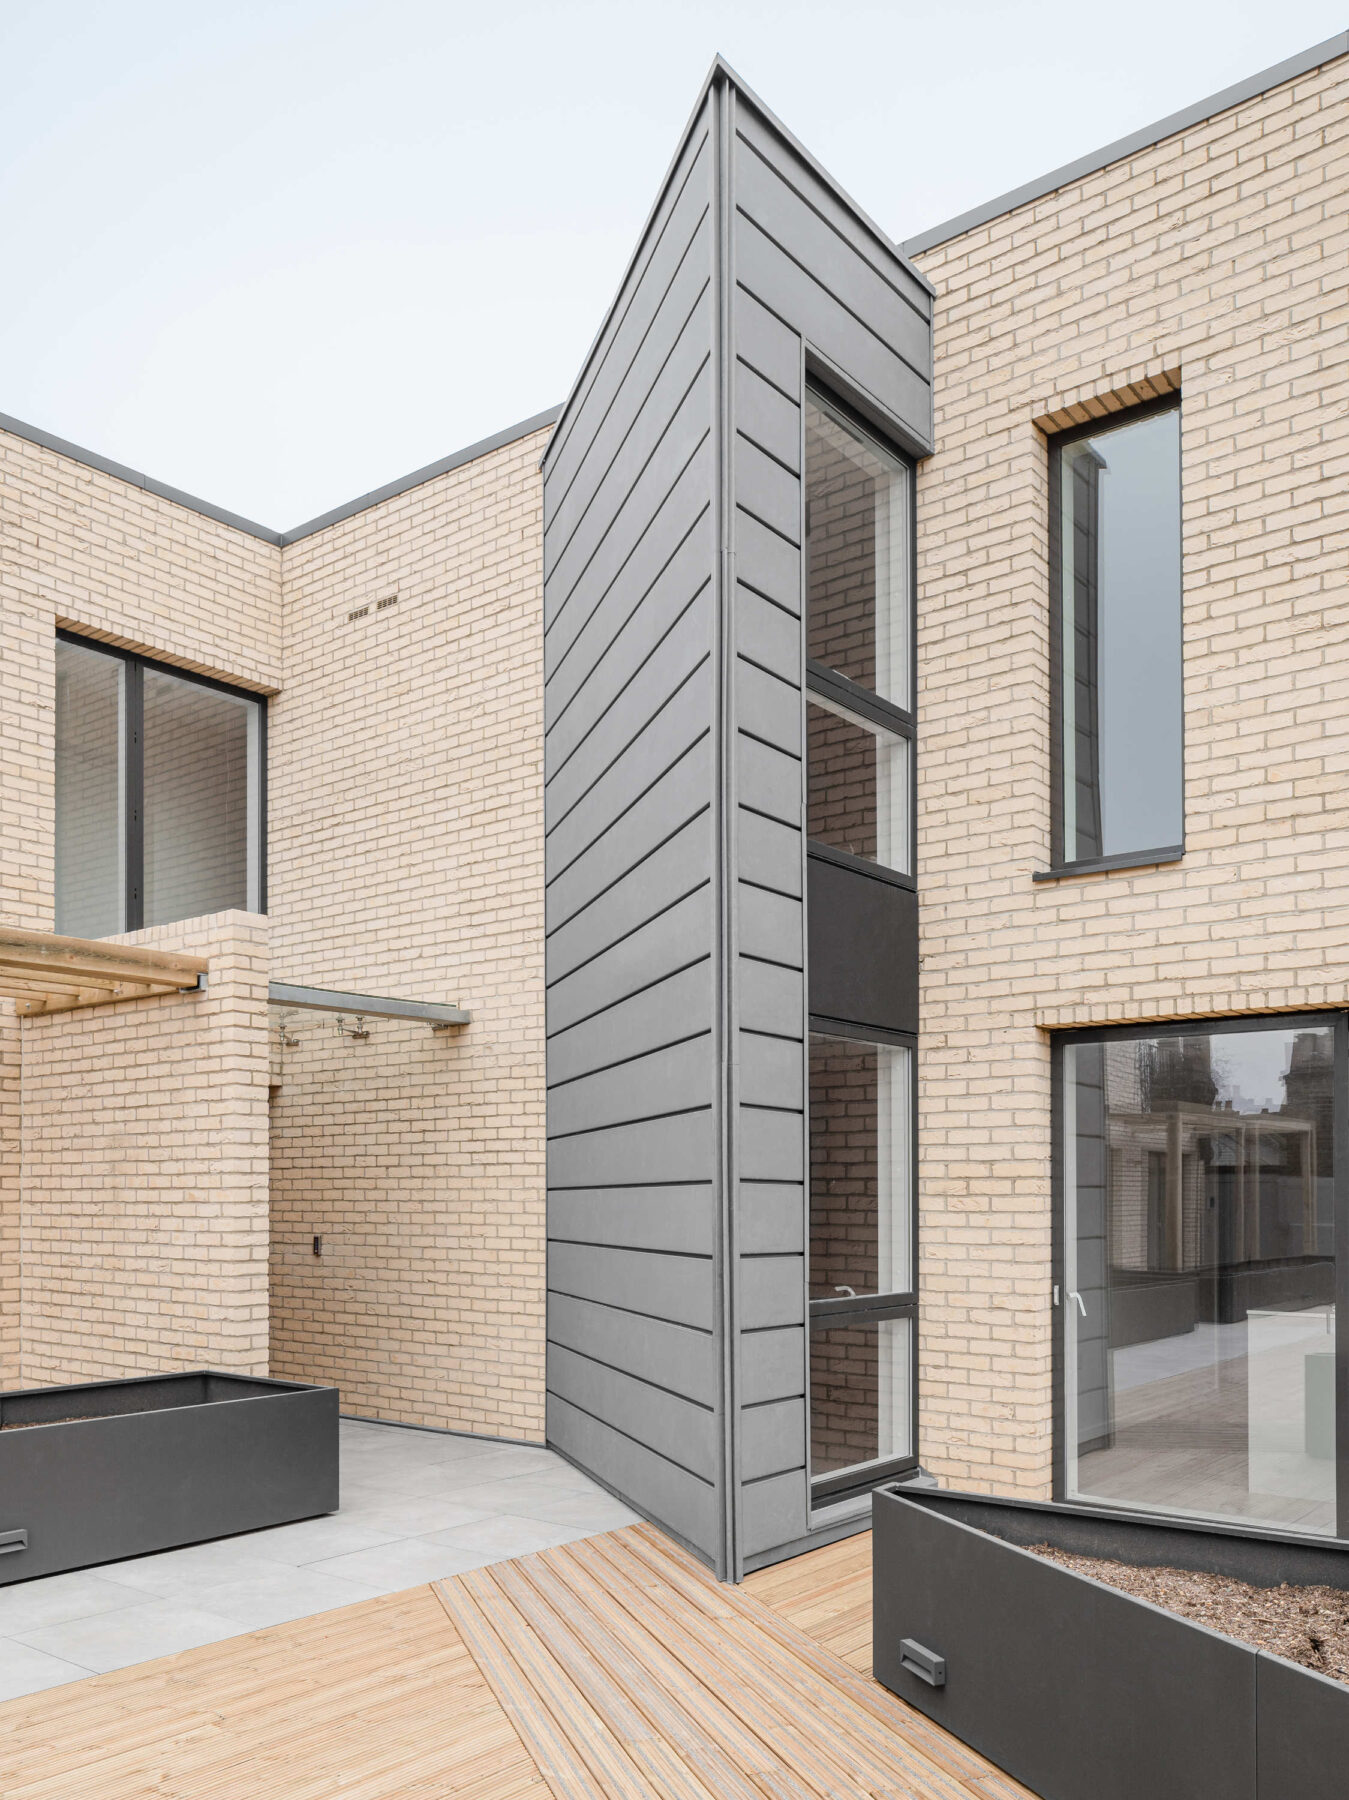 Clements & Porter Architects